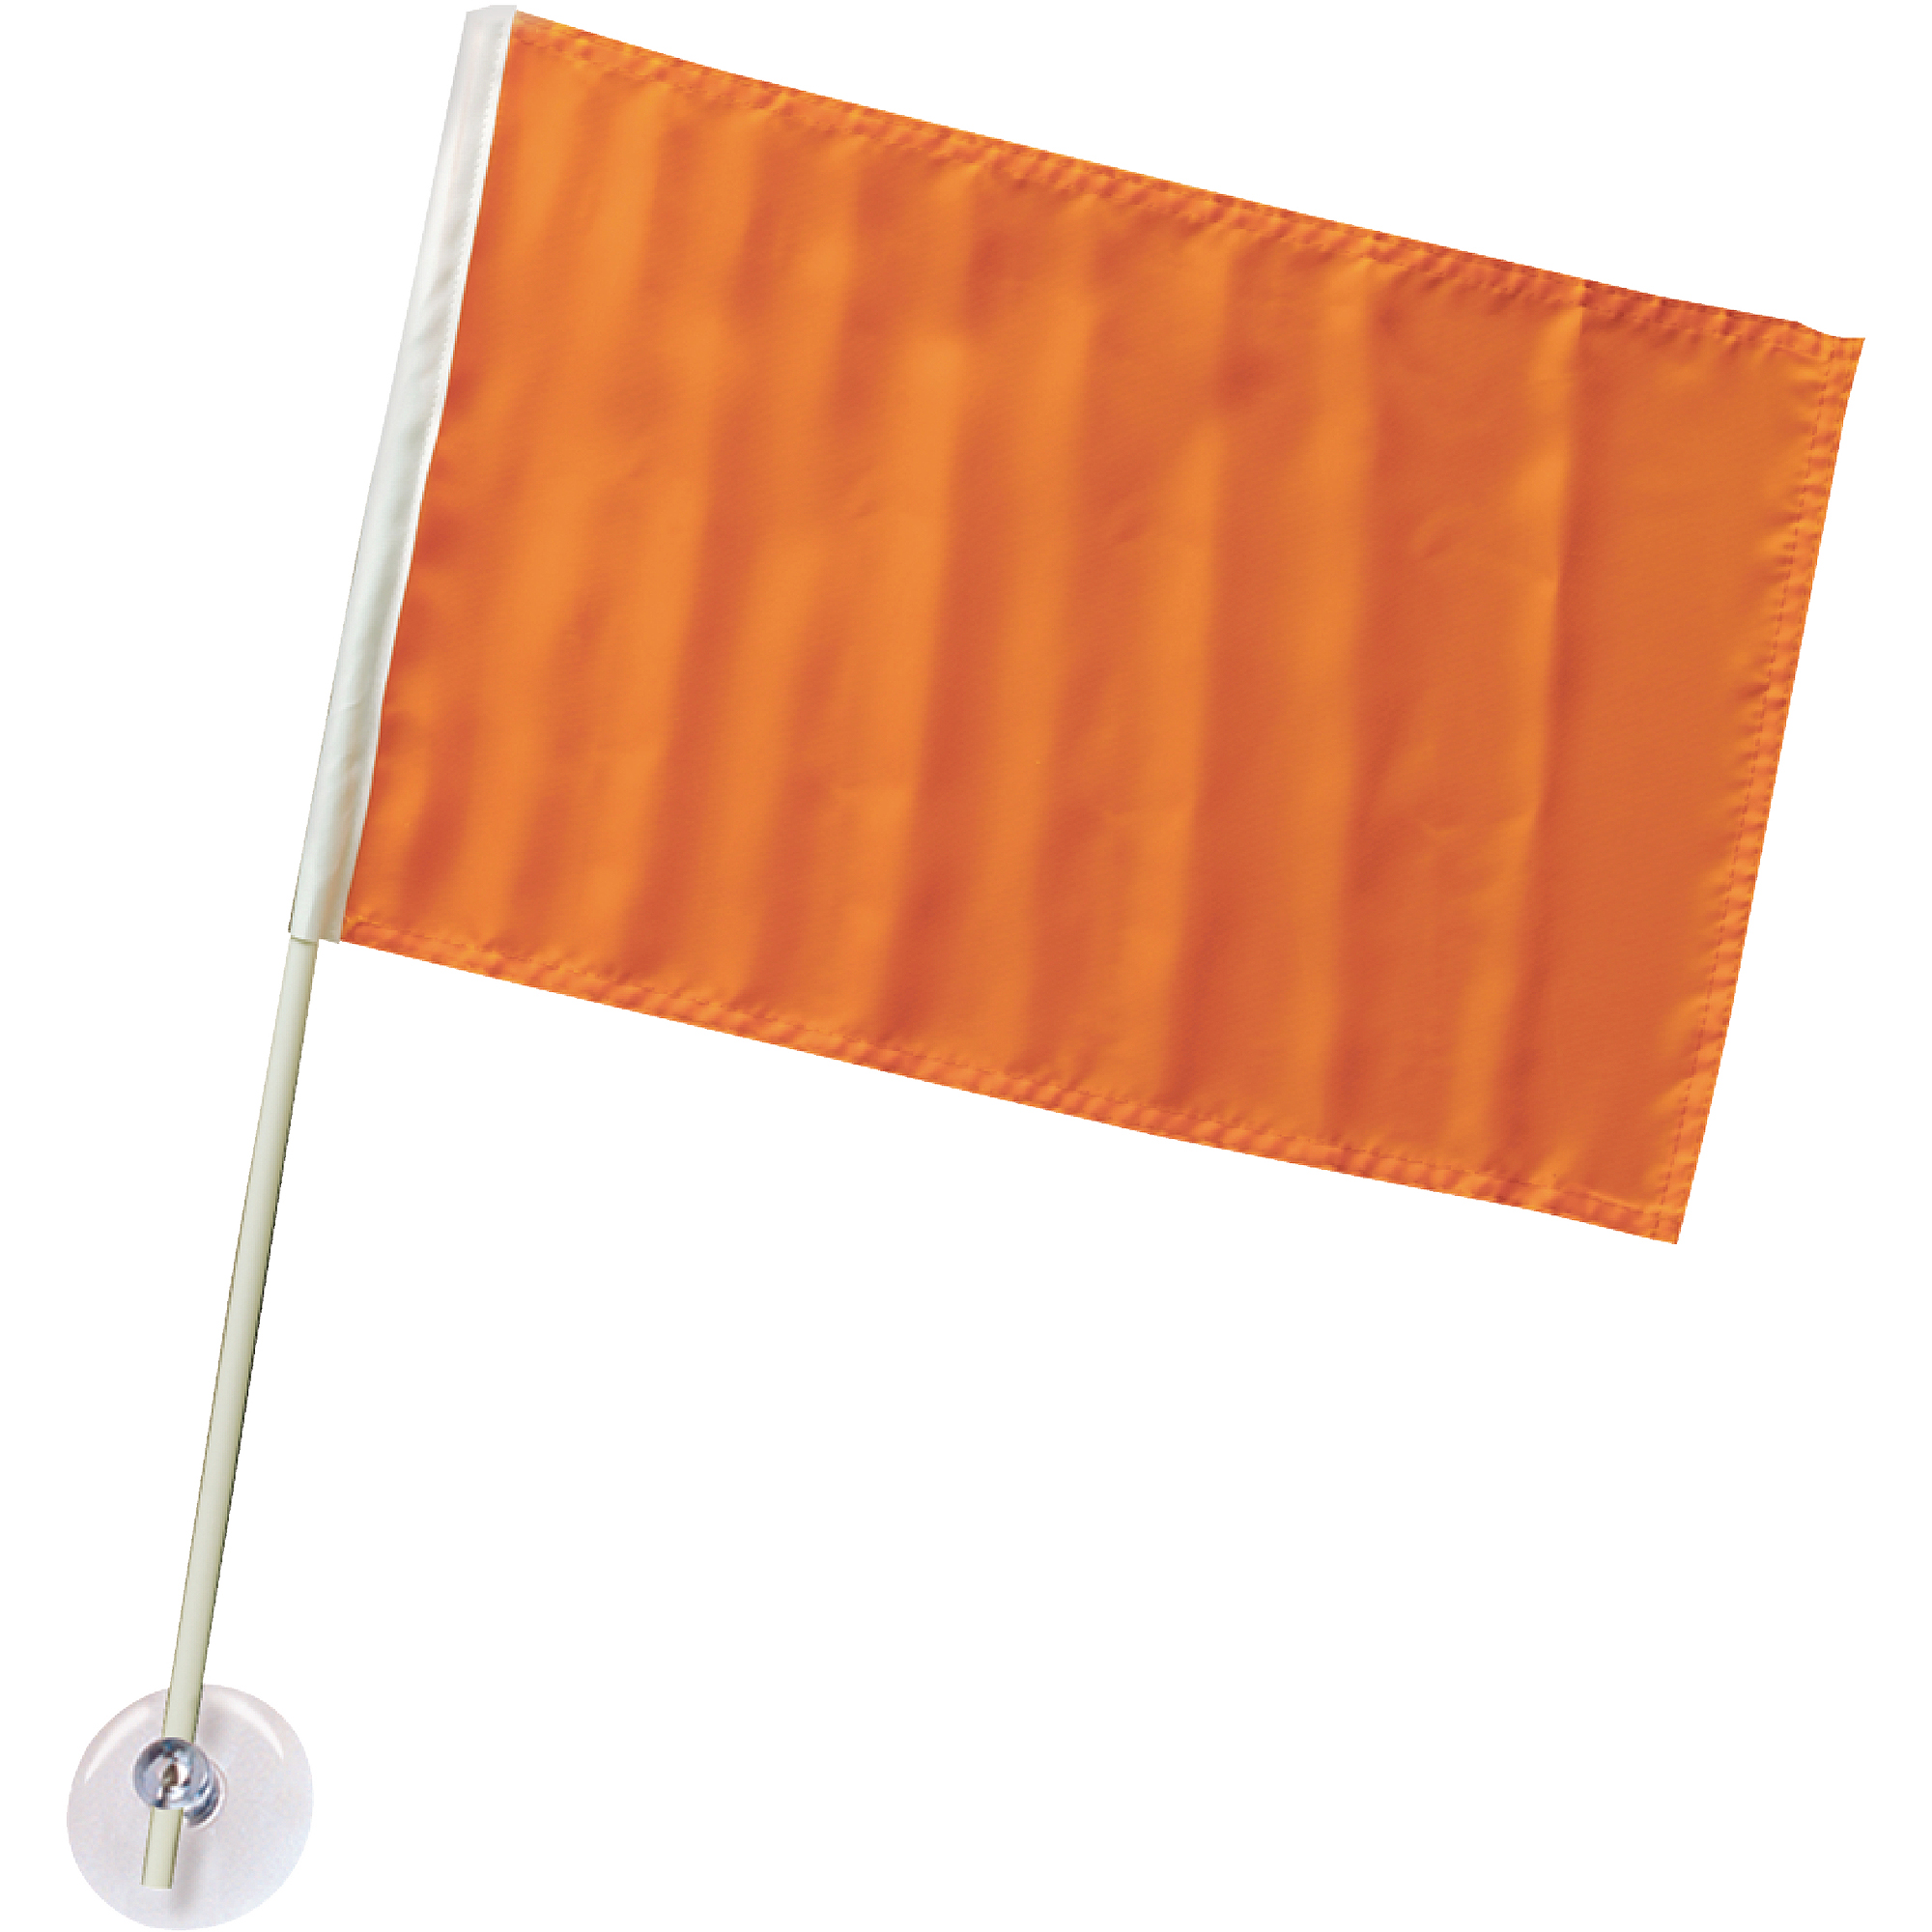 "Seachoice 12"" x 18"" Orange Nylon Ski Flag on 24"" Plastic Pole with Suction Cups by Seachoice Products"